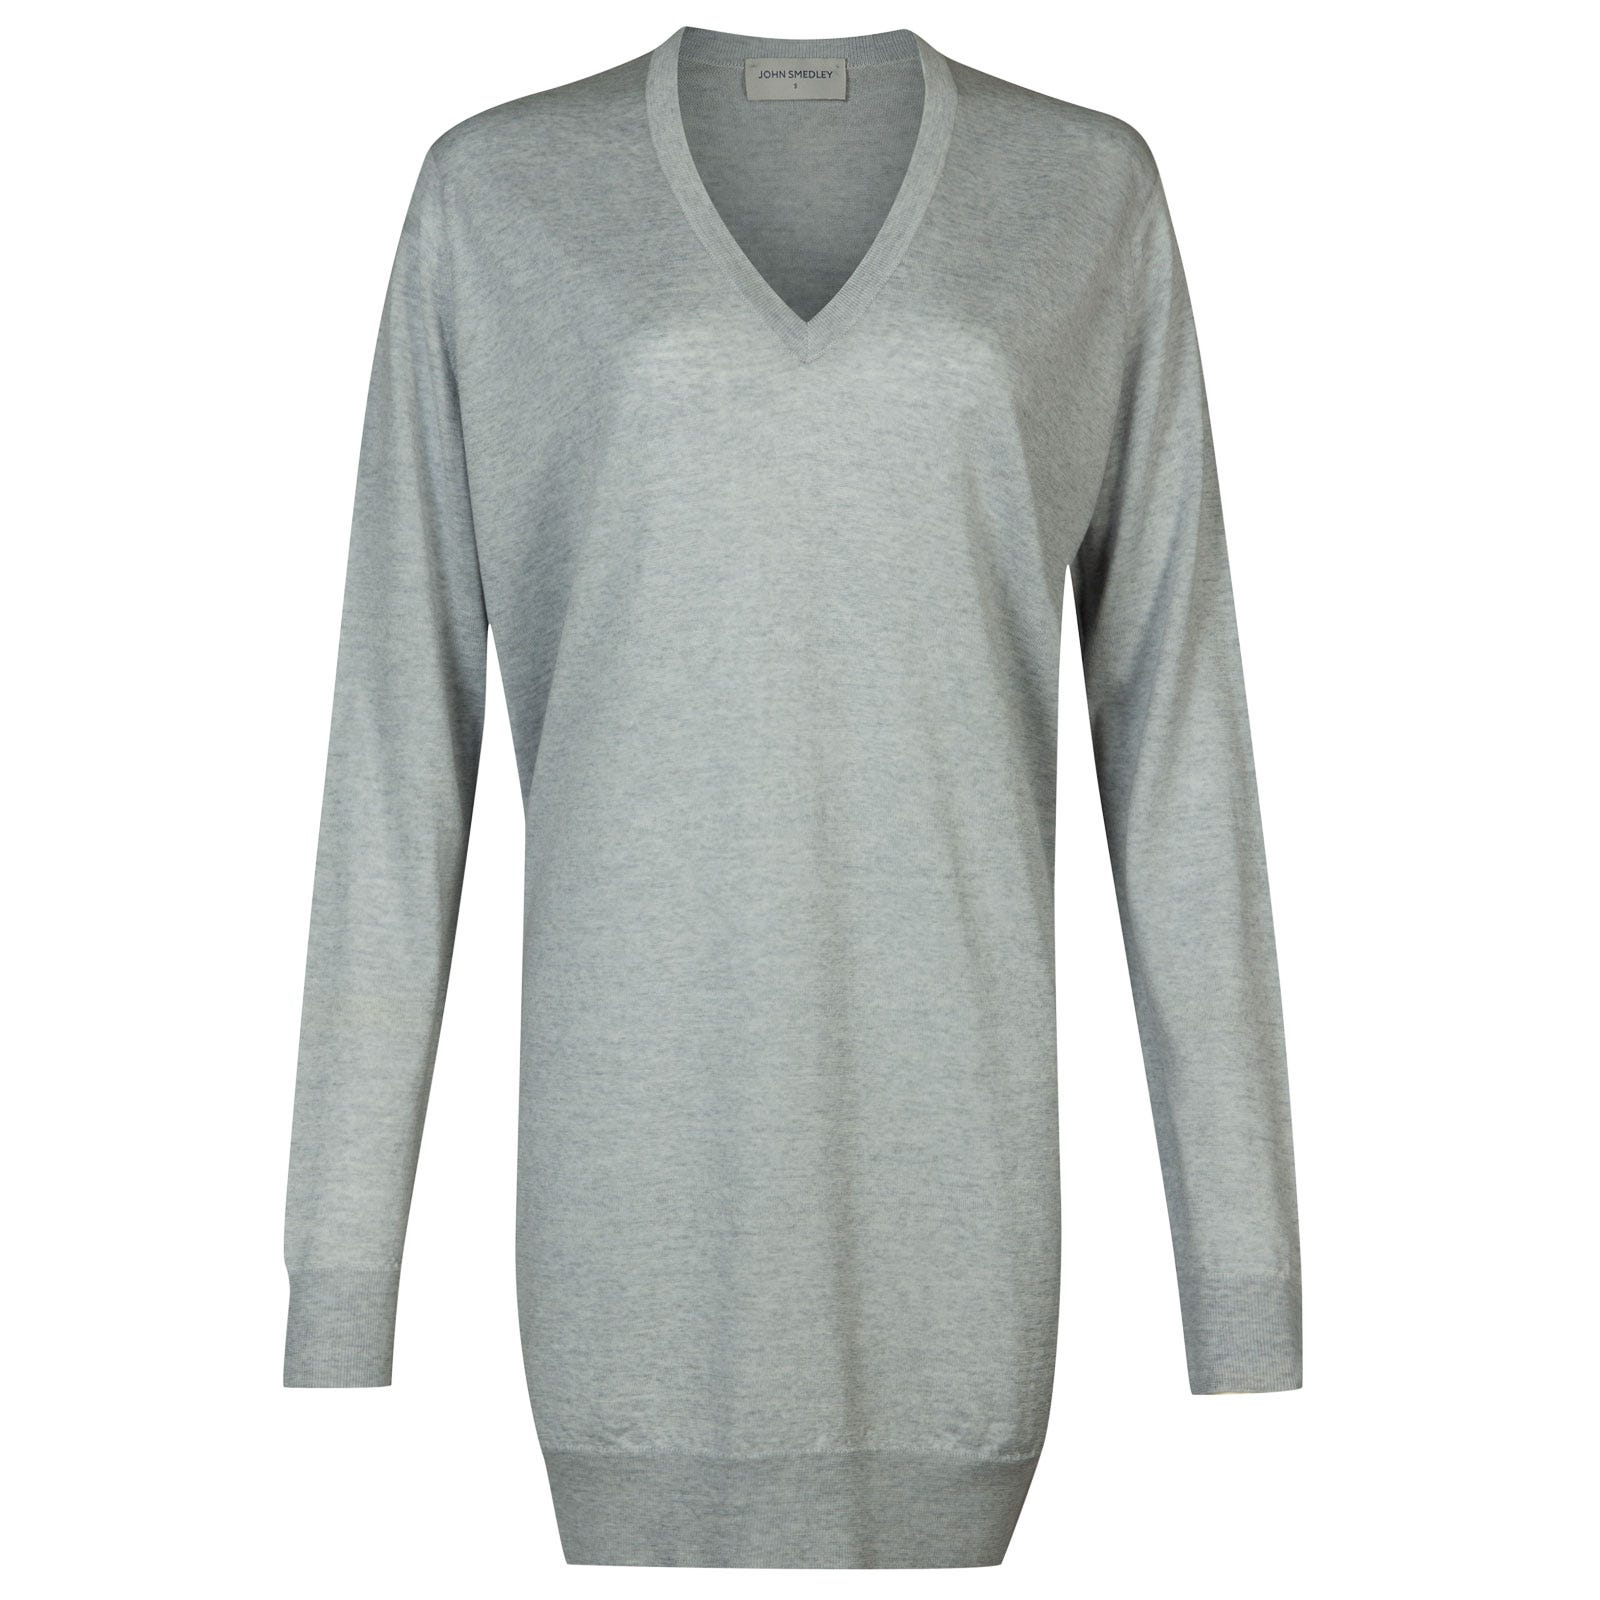 John Smedley Alma Merino Wool Sweater in Bardot Grey-L